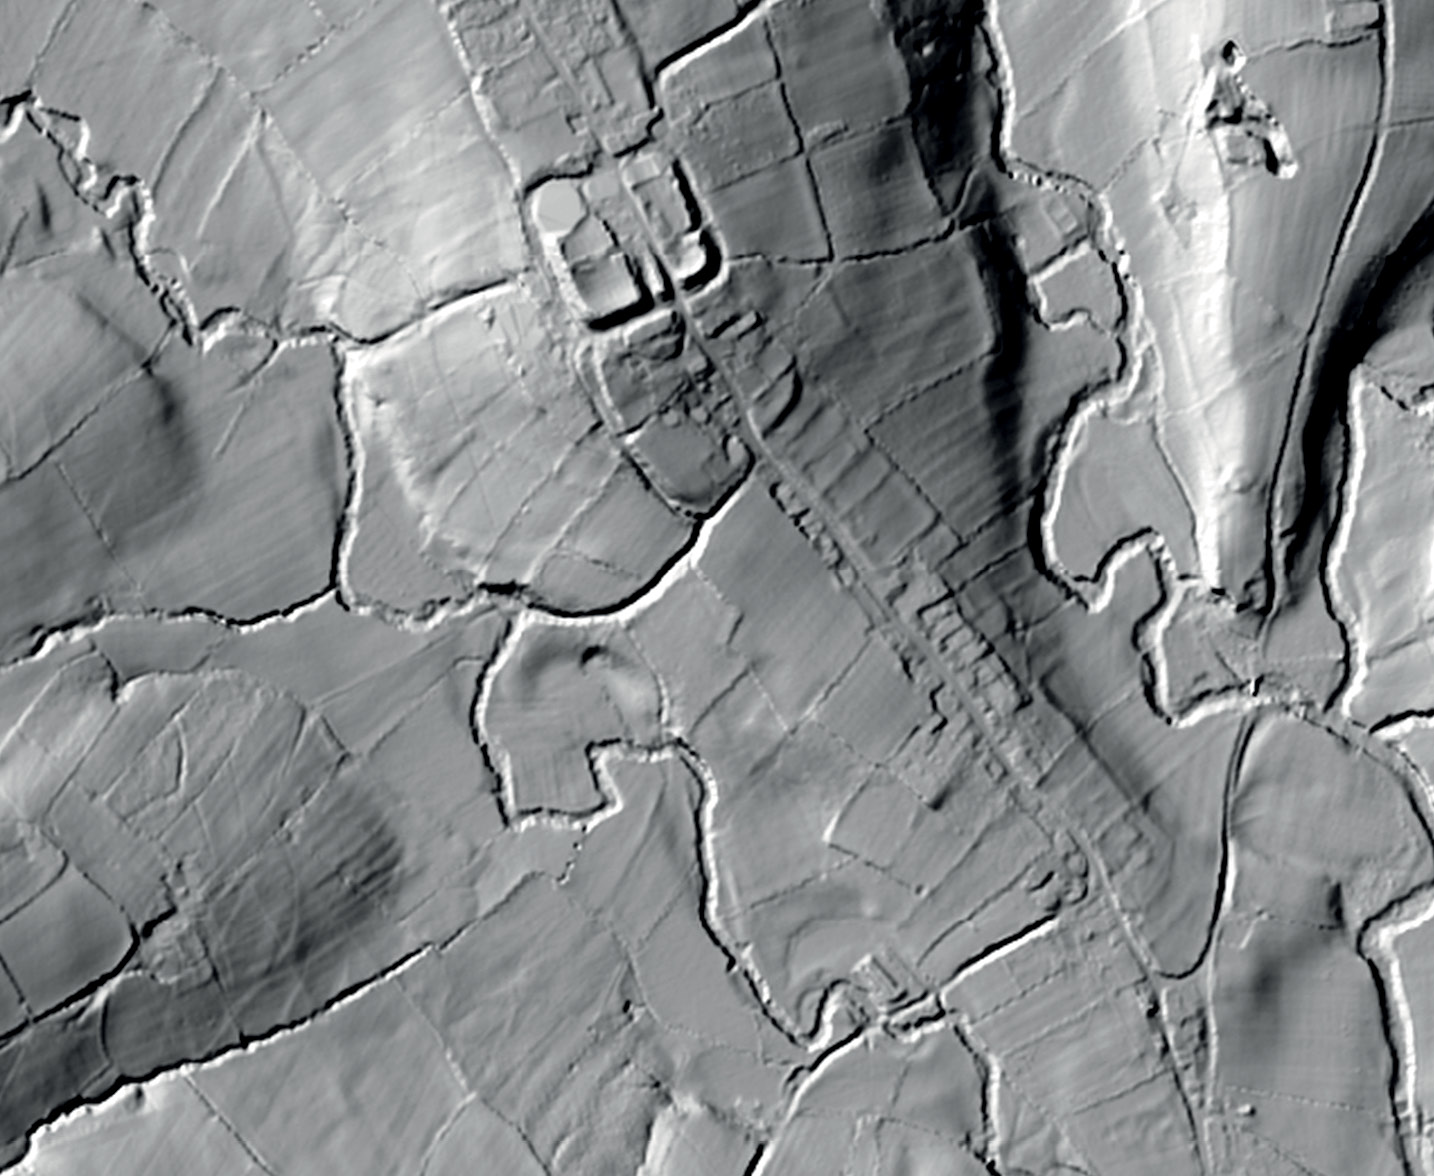 below Surviving earthworks flank the single street of Longtown, marking strip fields, the medieval market place, burgage plots, and meadows.